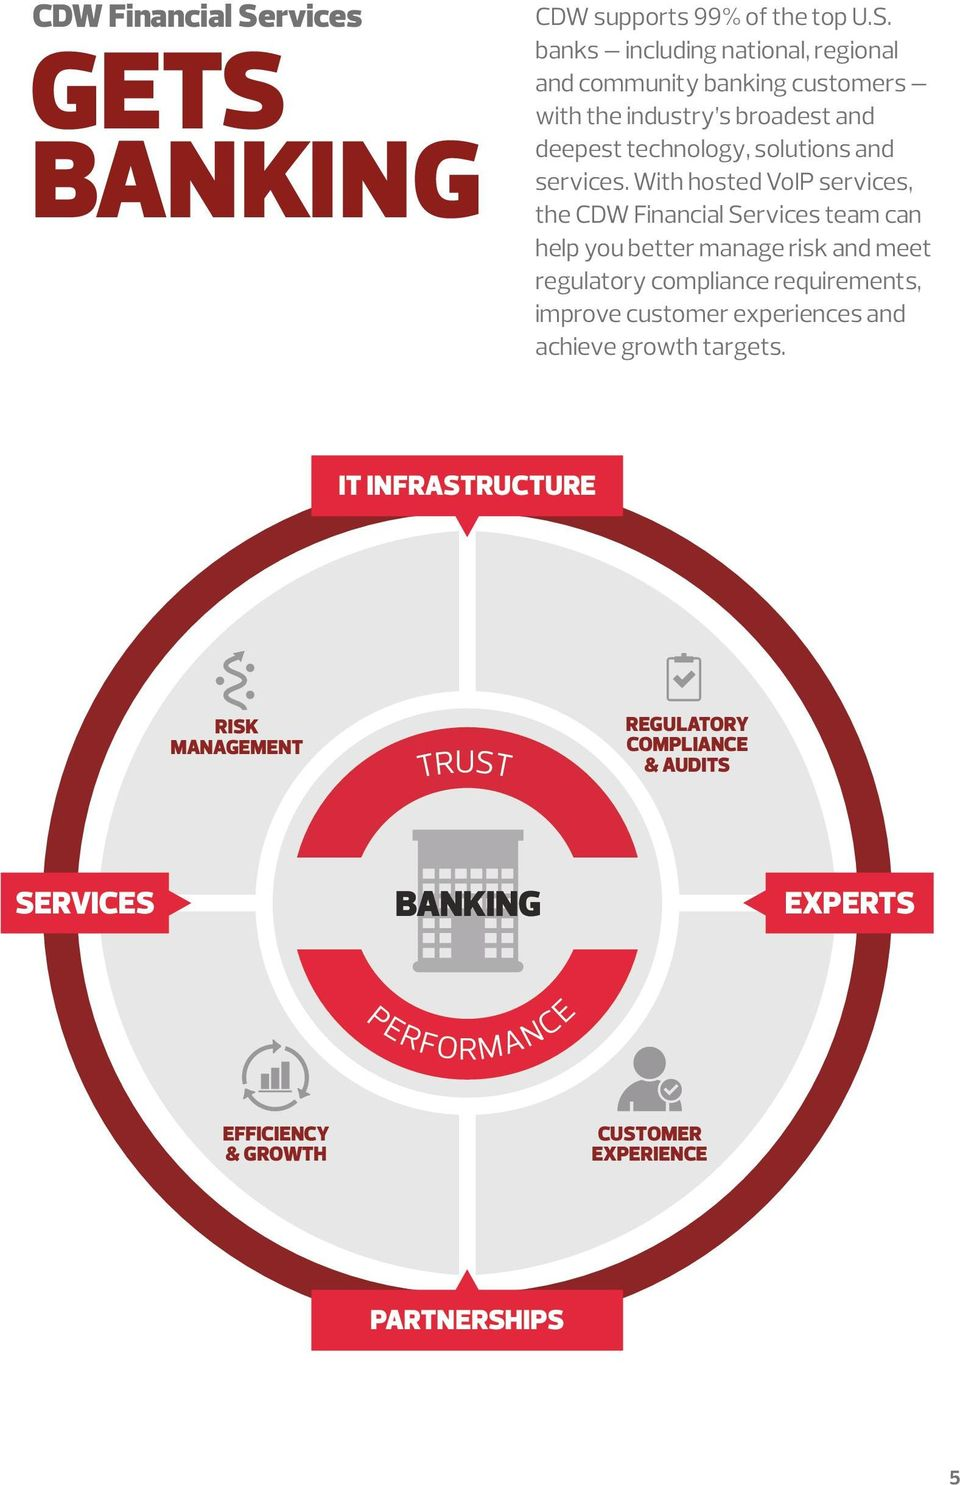 BANKING improve customer experiences and IT INFRASTRUCTURE RISK MANAGEMENT TRUST REGULATORY COMPLIANCE & AUDITS SERVICES BANKING EXPERTS PERFORMANCE EFFICIENCY & GROWTH CUSTOMER EXPERIENCE